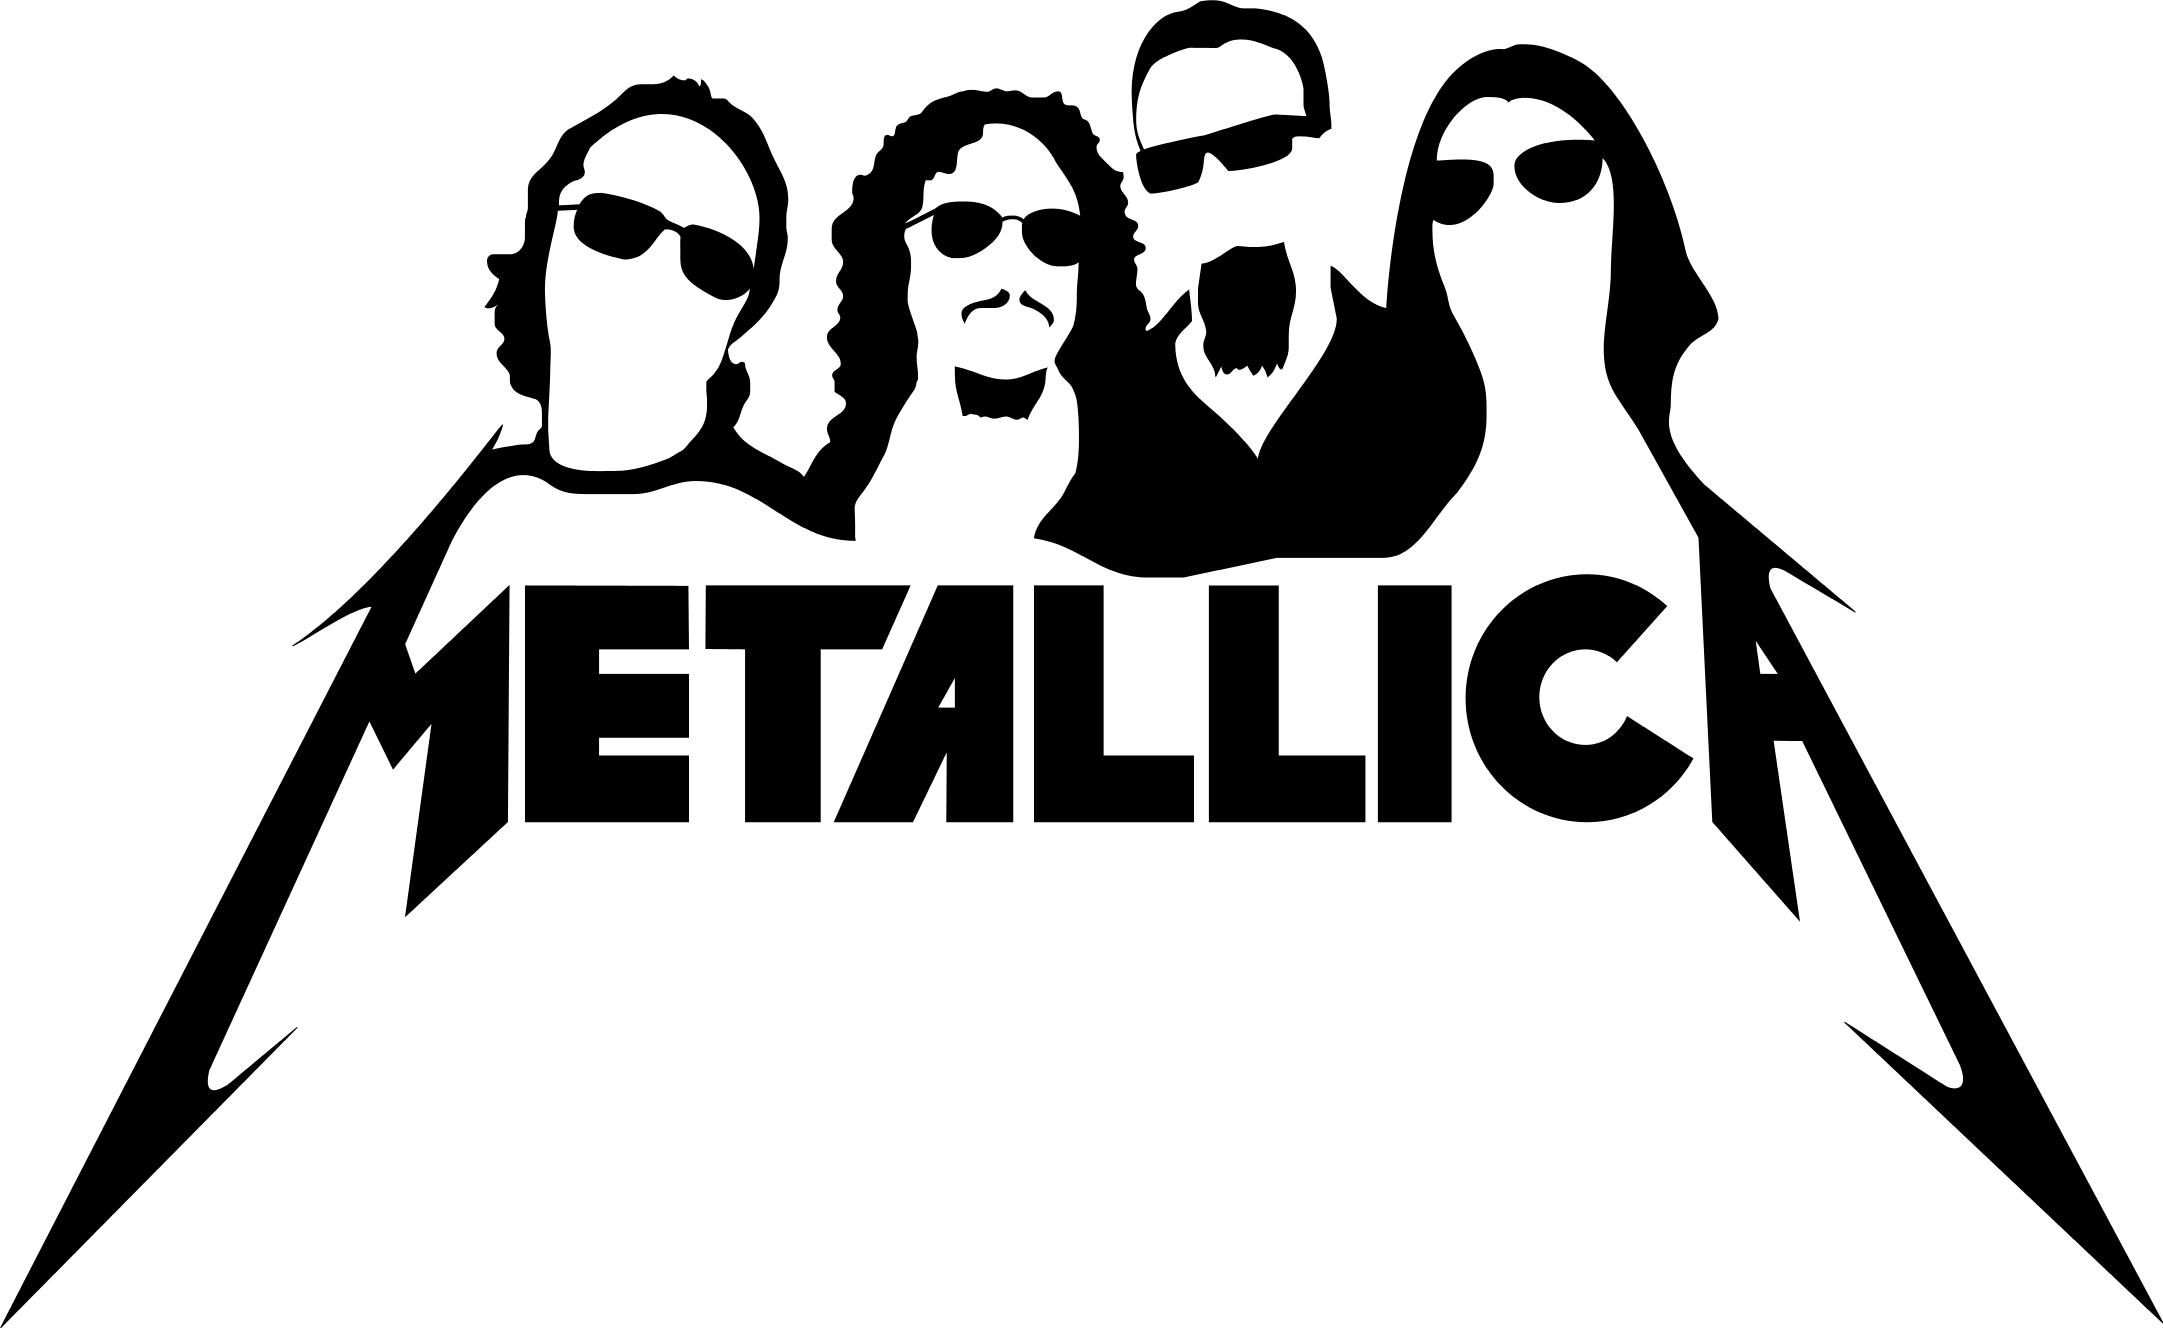 metallica | Metallica in 2019 | Metallica art, Metallica band, Metallica jpg free download